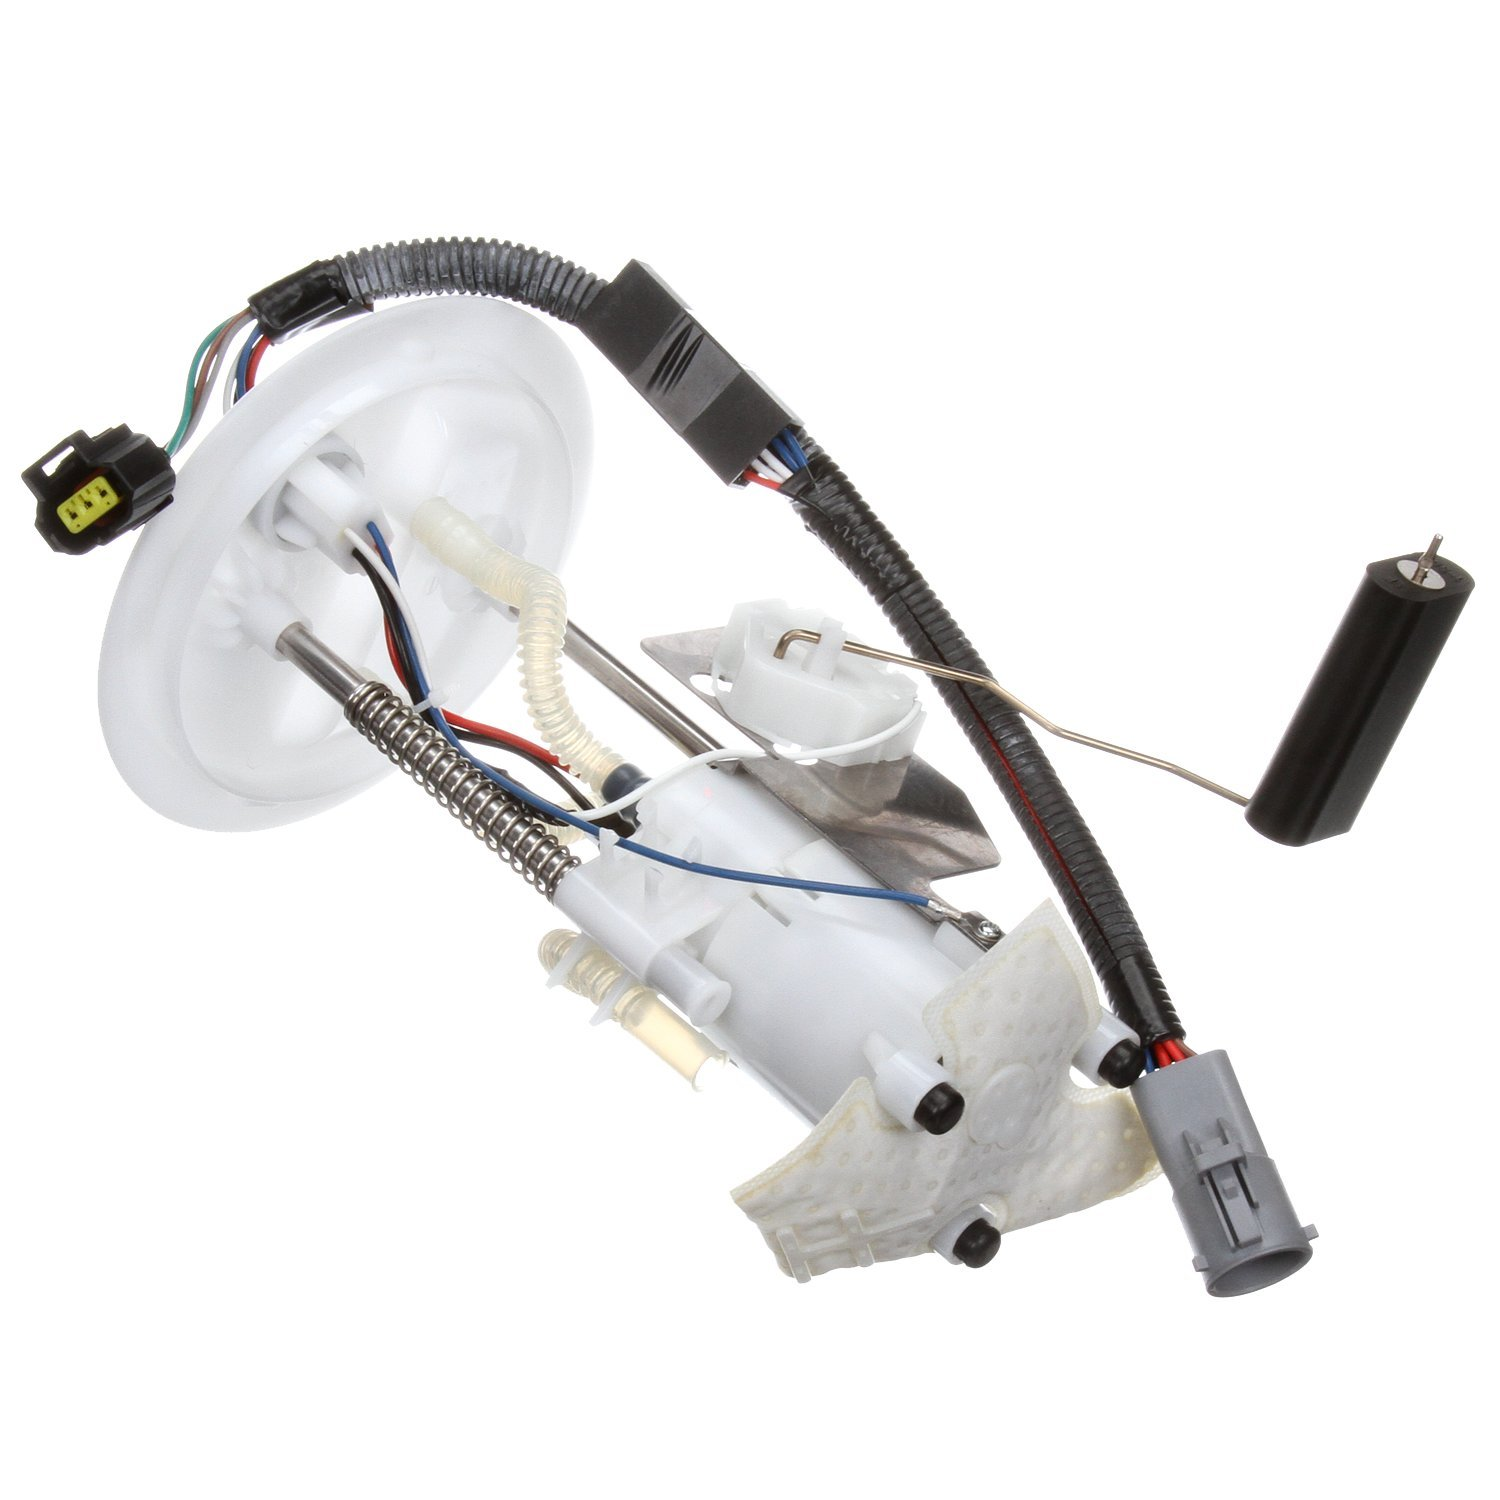 Delphi FG0861 Fuel Pump Module by Delphi